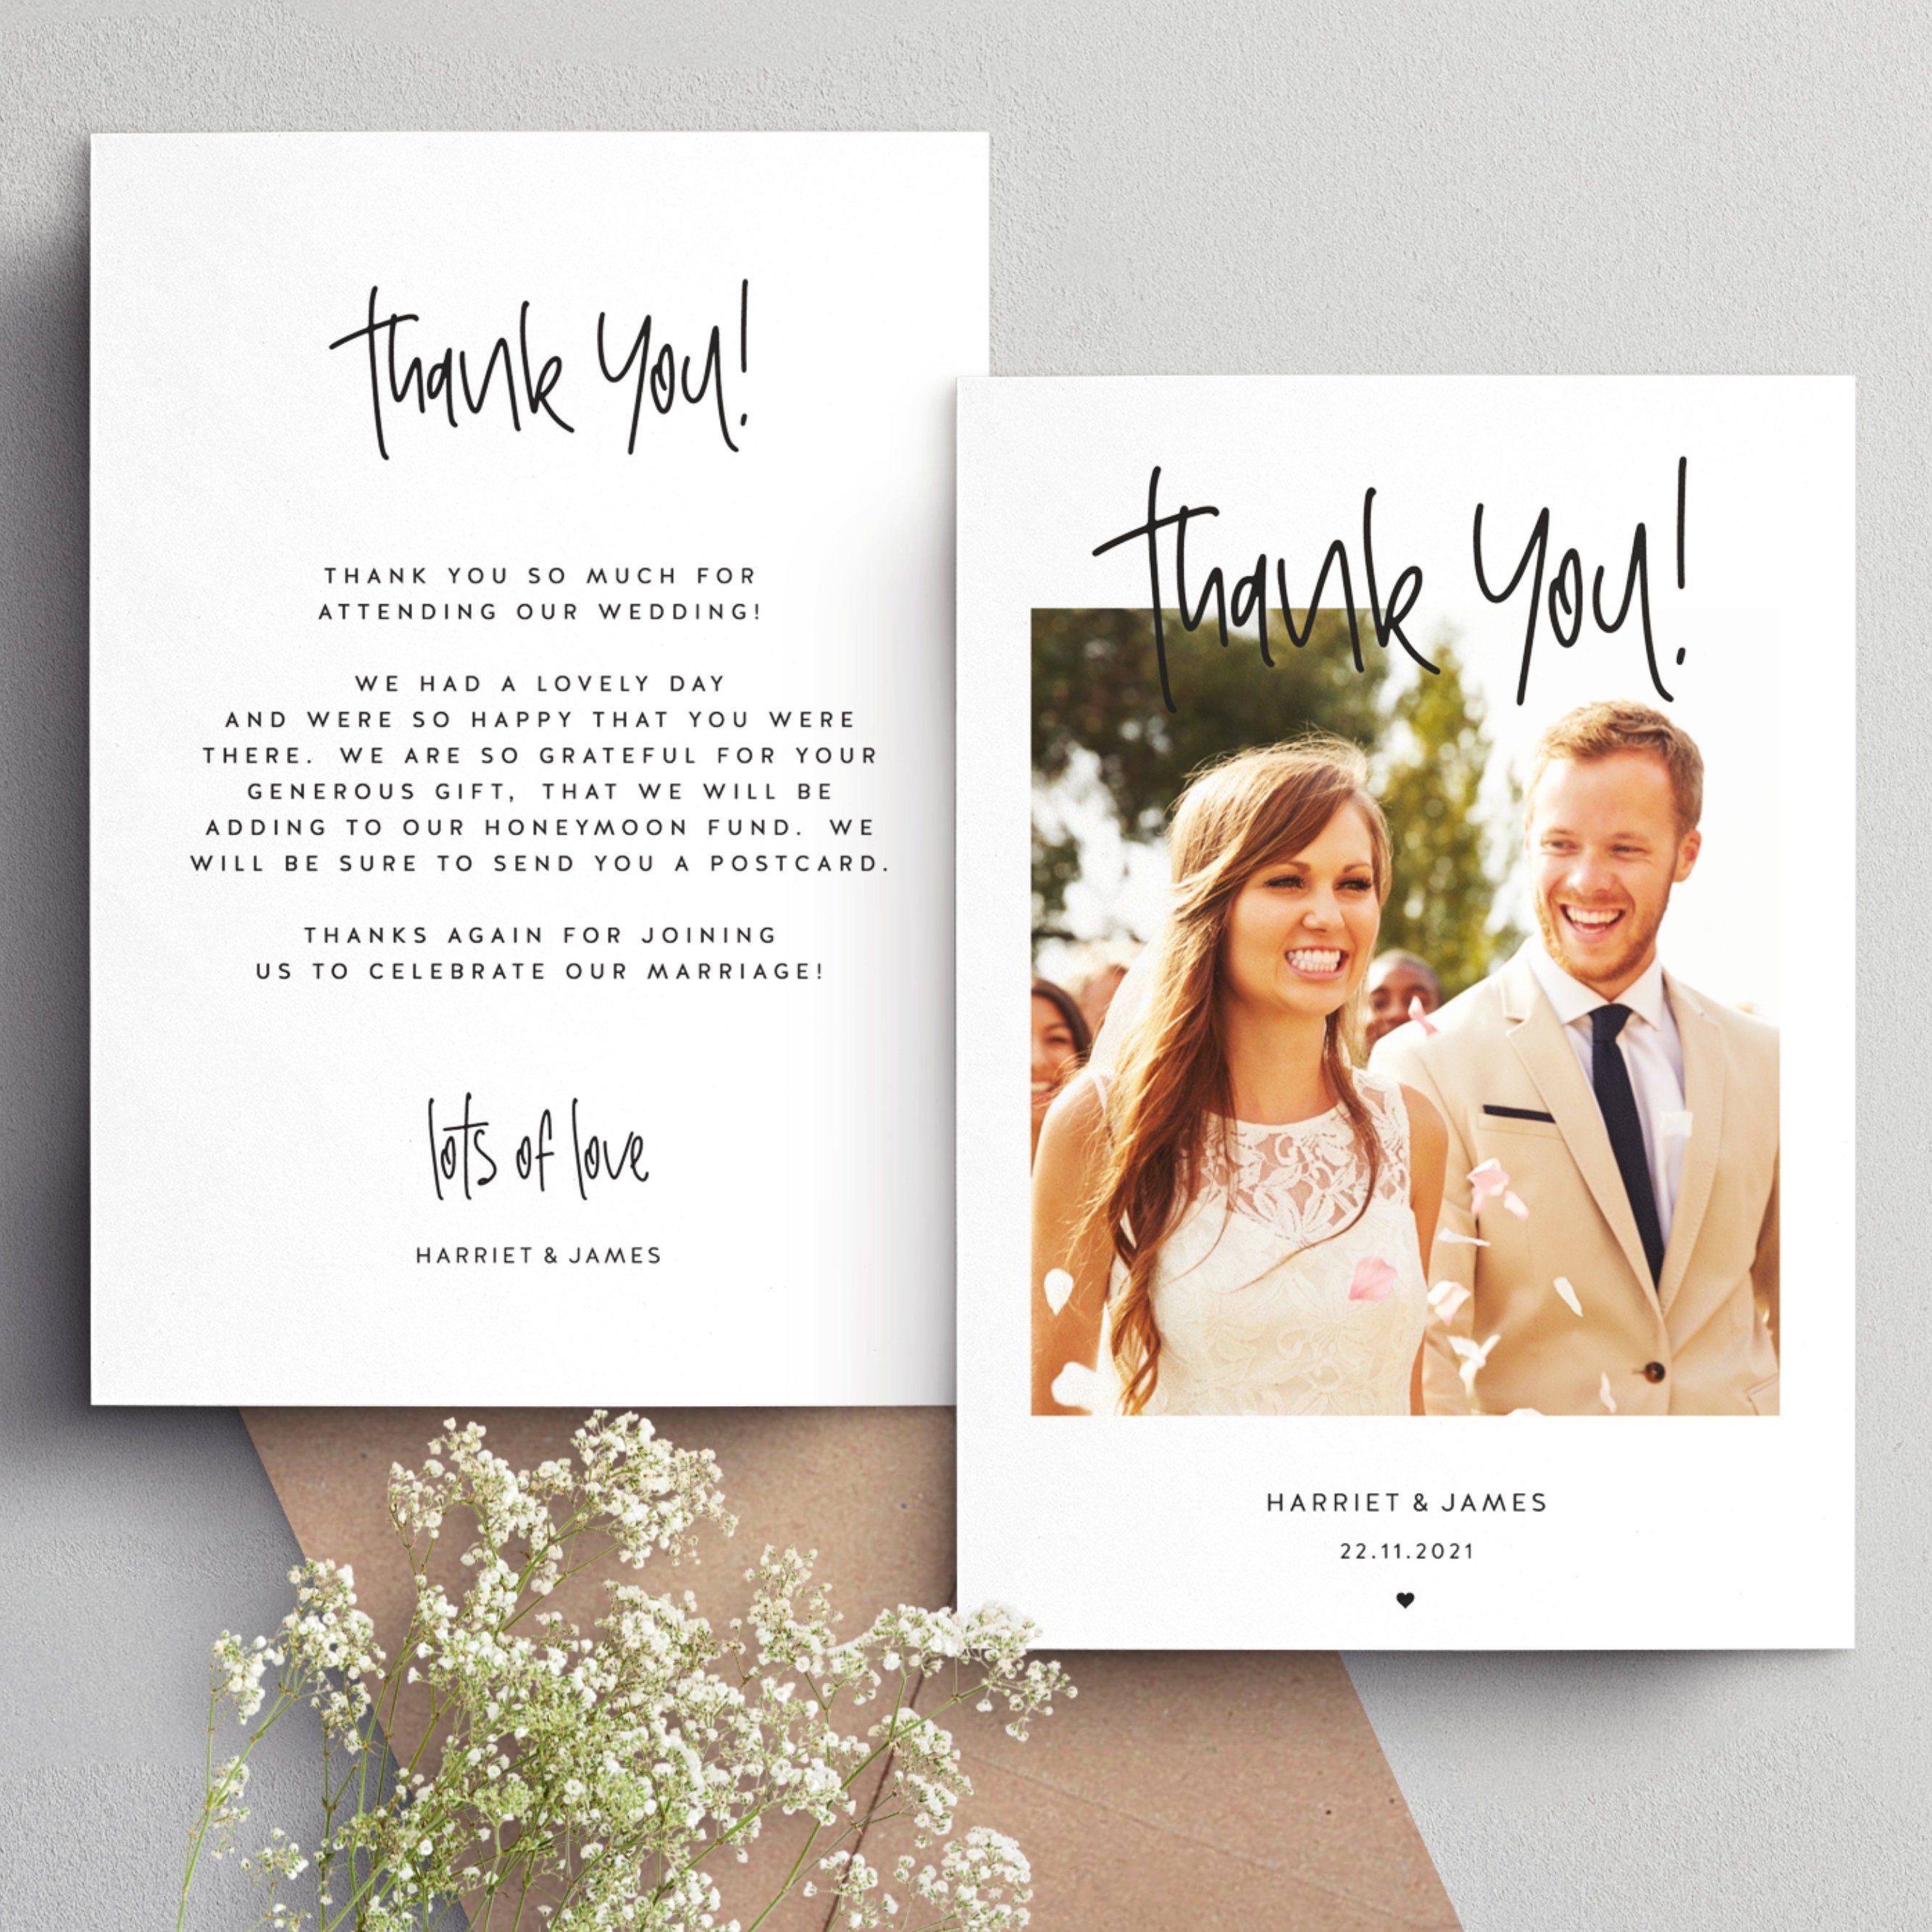 Double Sided Wedding Thank You Cards With Photo Thank You Etsy Personalized Thank You Cards Wedding Thank You Cards Wedding Thank You